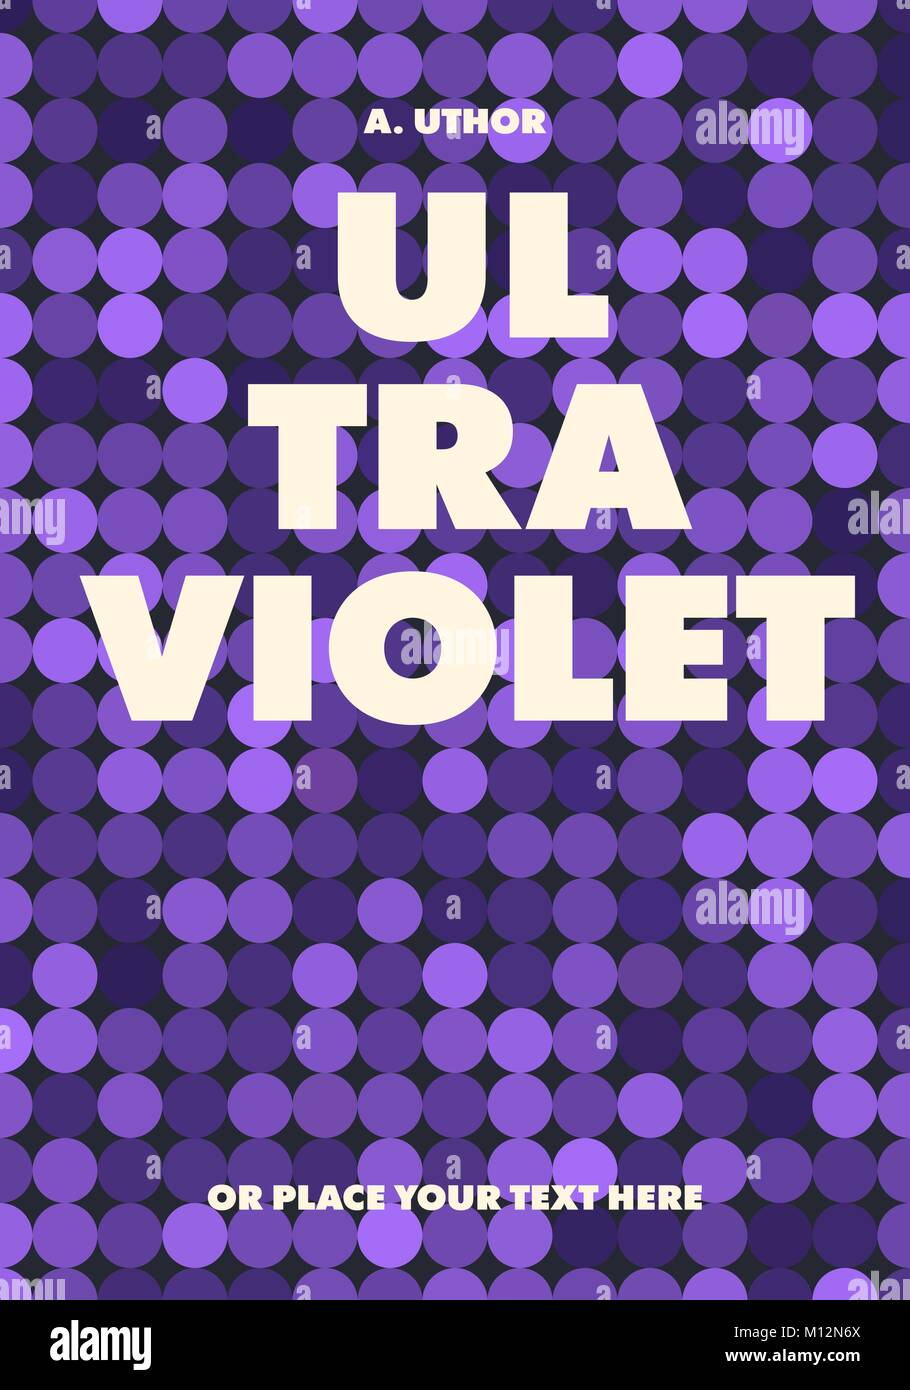 Abstract trendy book cover design. Violet circles pattern. Applicable for books, posters, placards etc. Clipping - Stock Image